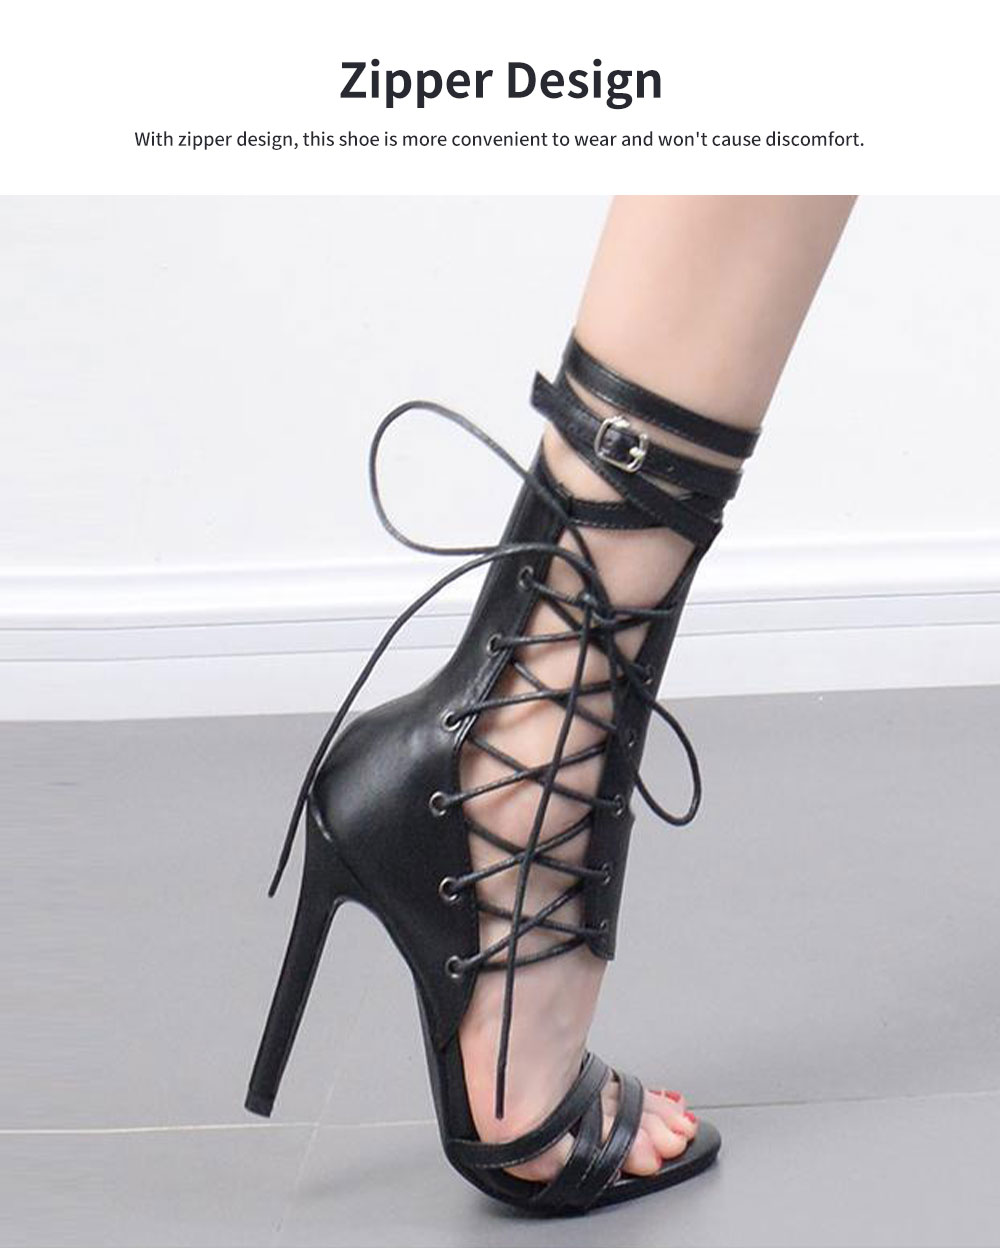 Large Strap Buckle High Heel Boots, Roman Style Fashionable Sexy Boots for Women 5